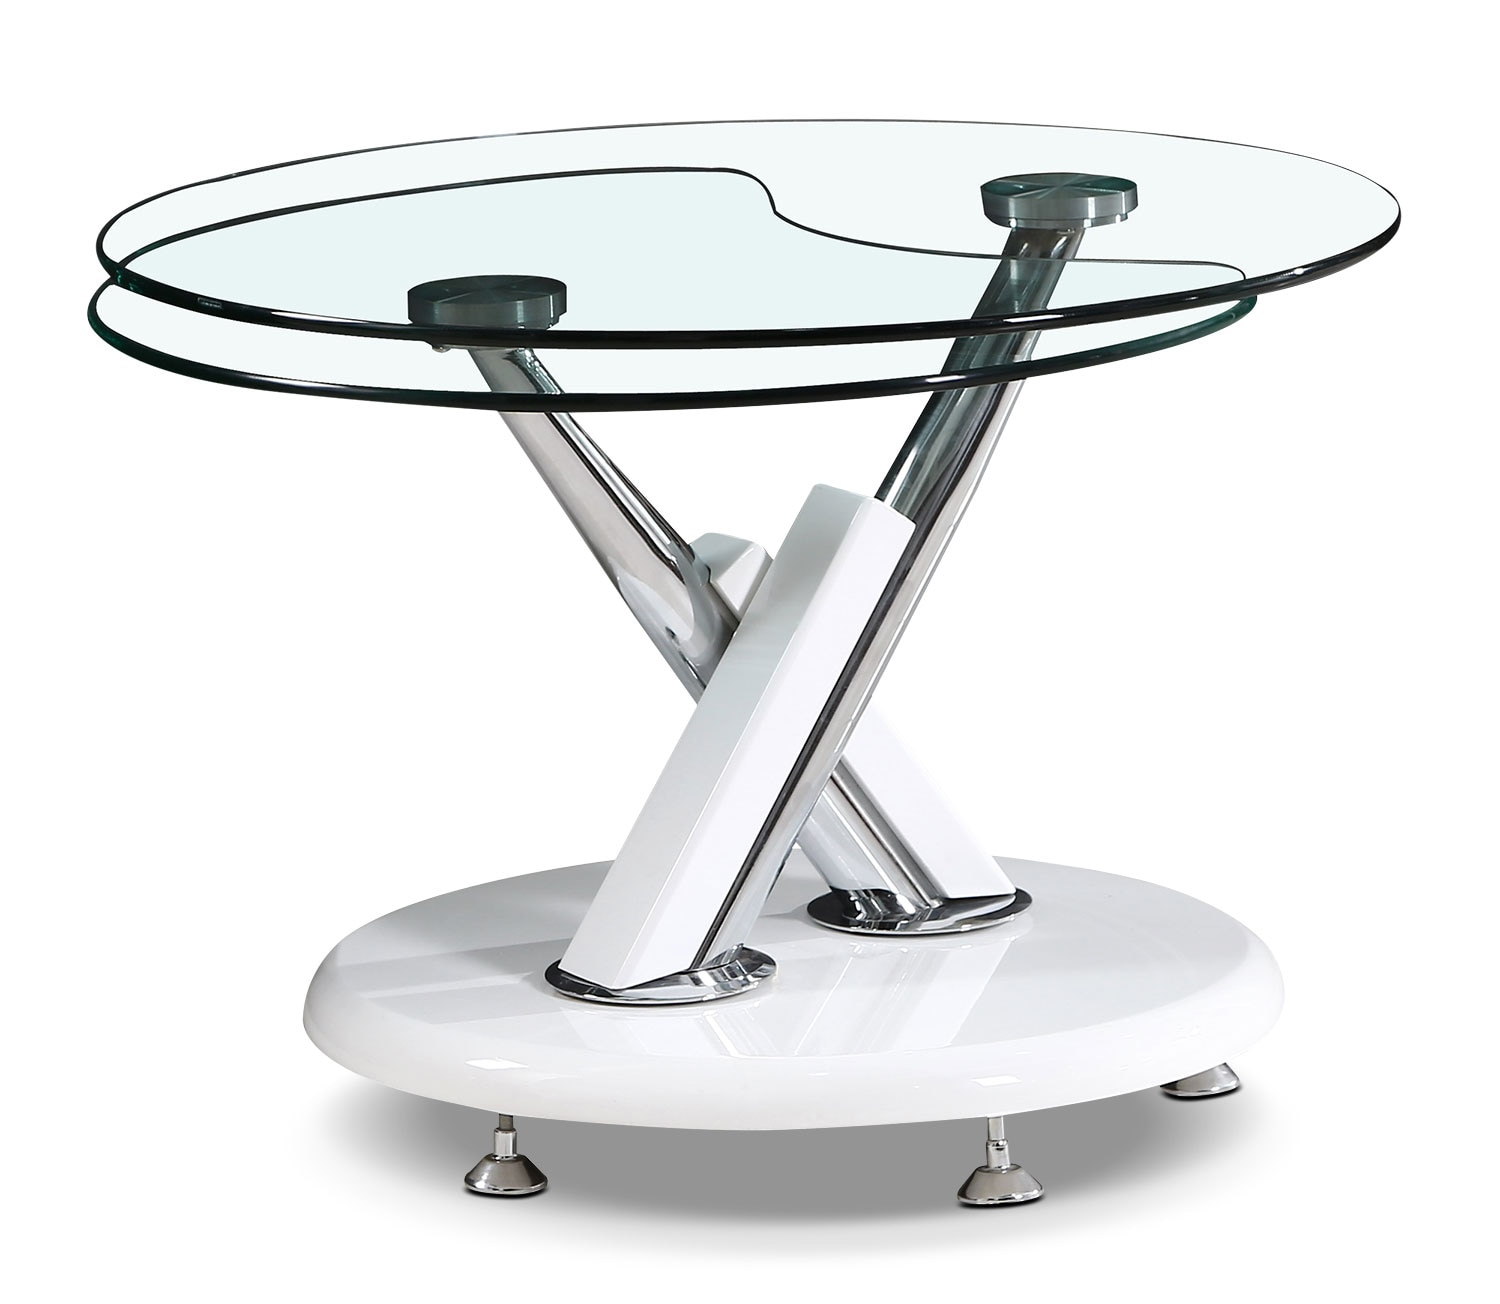 Embree Coffee Table with Extending Swivel Top